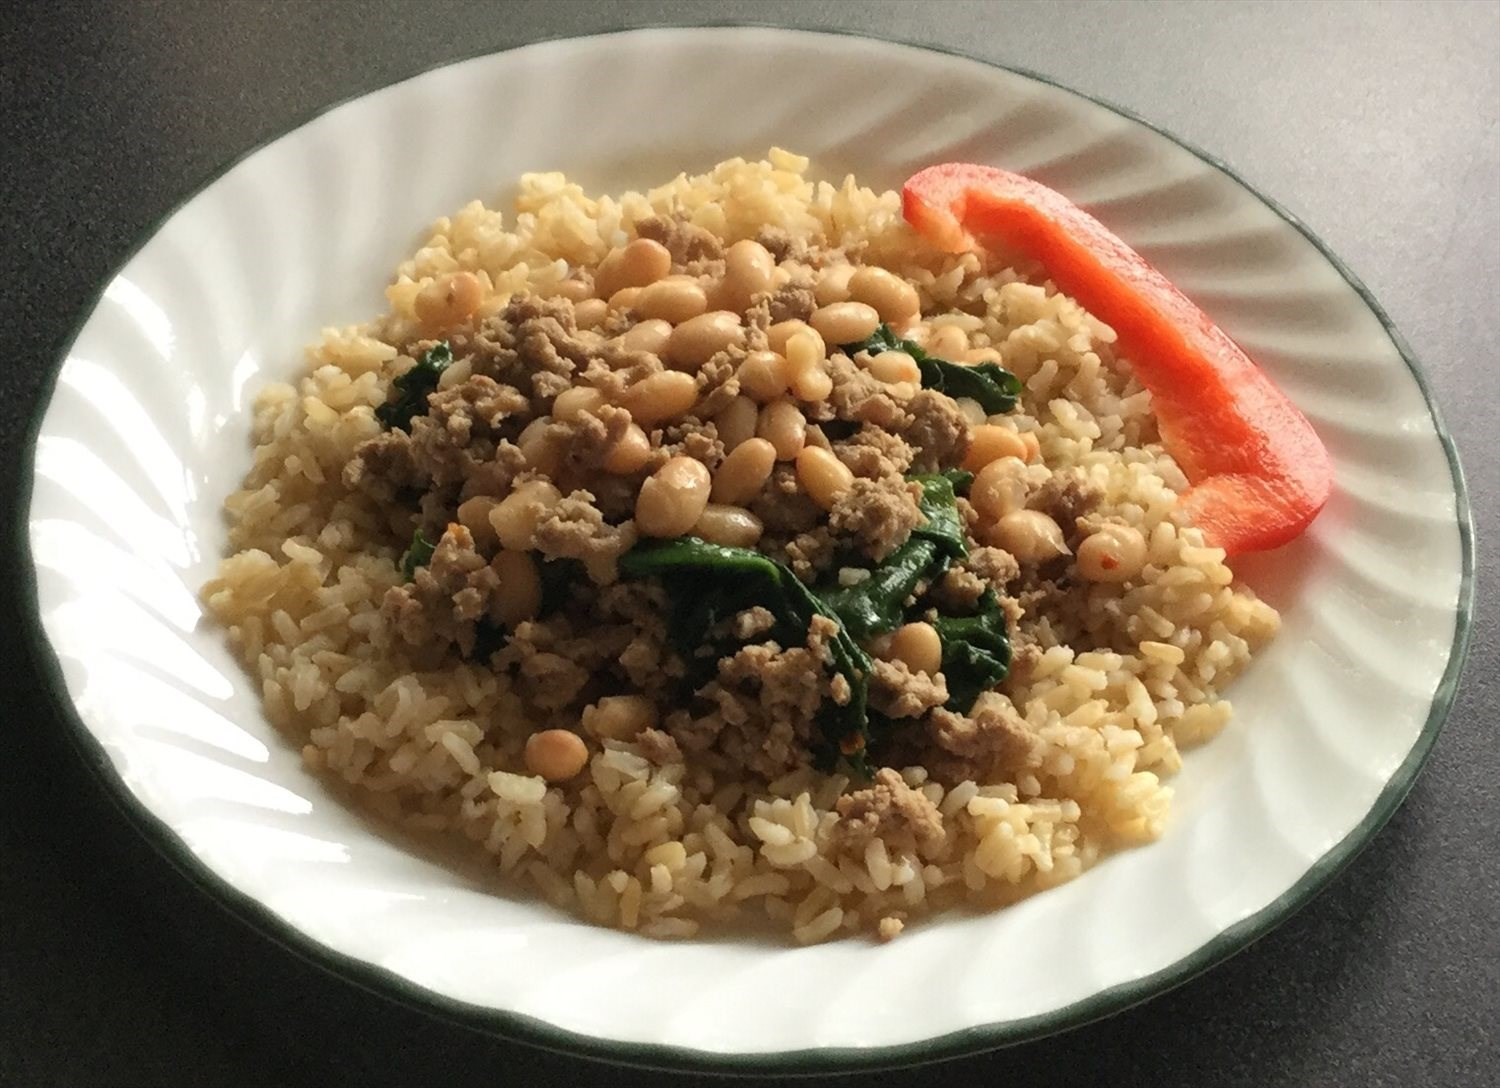 Turkey Spinach Over Brown Rice